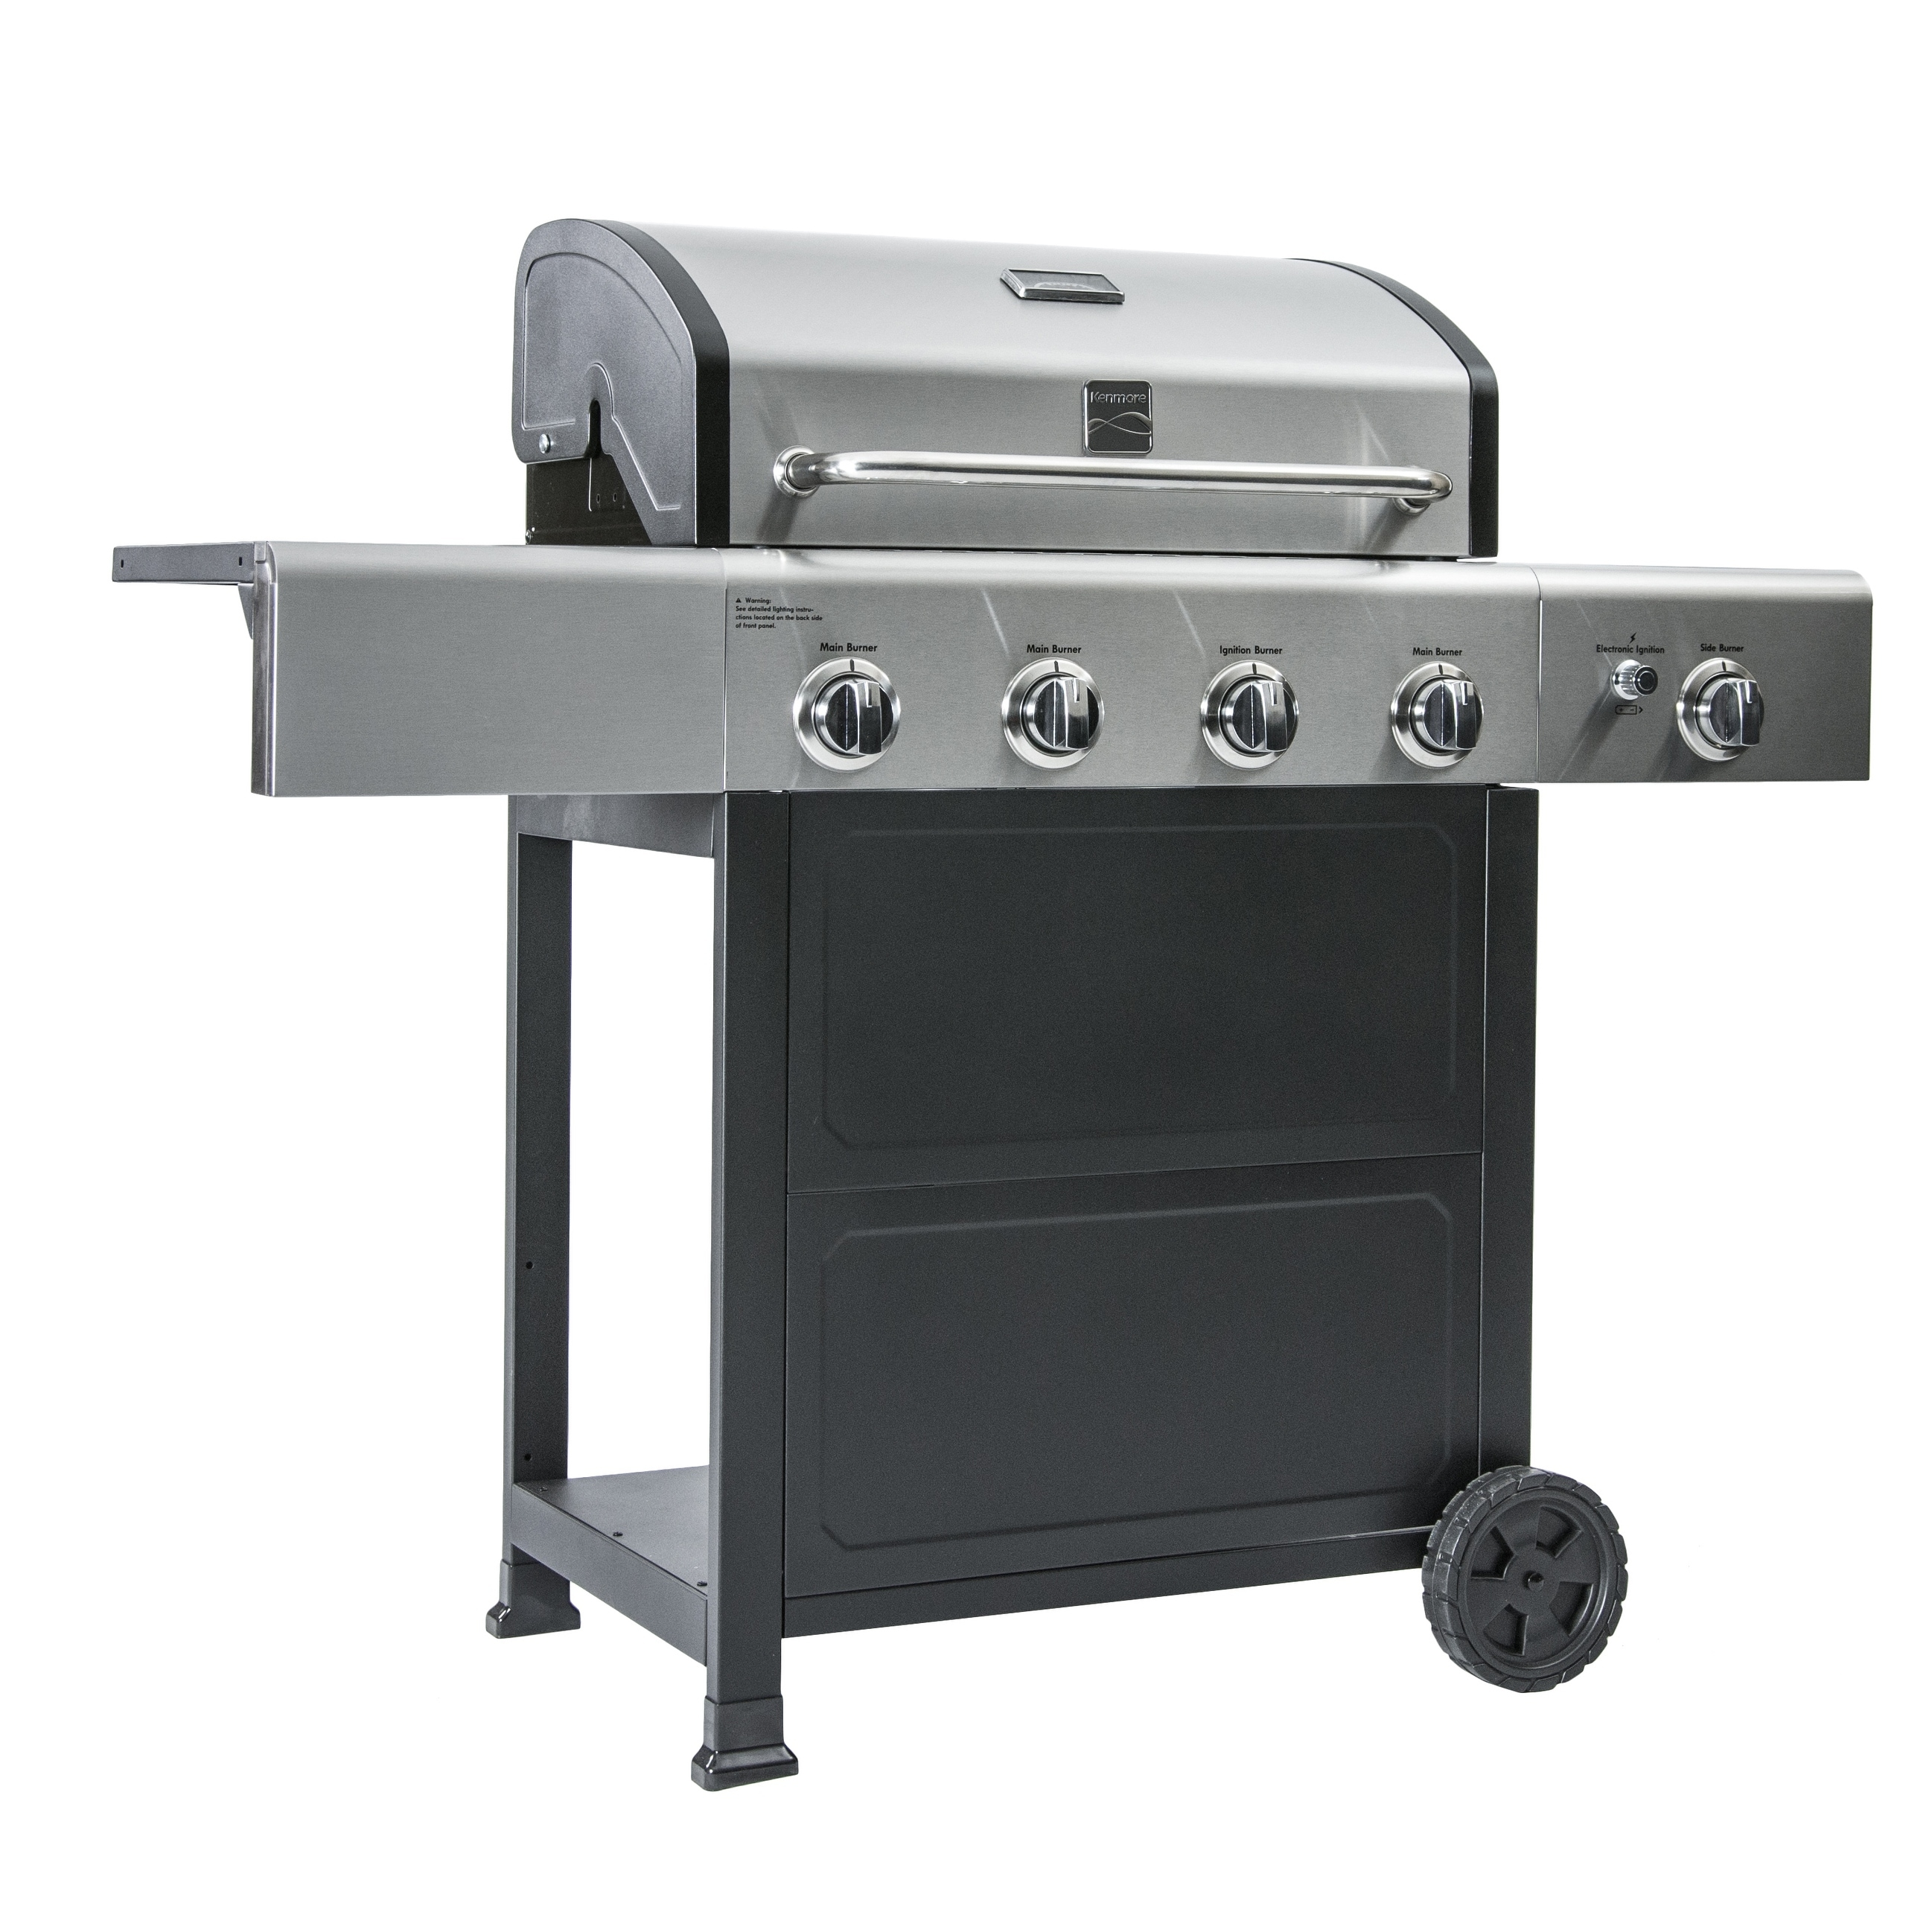 Barbecue Gaz Promotion Stainless Steel Grills Outdoor Cooking Shop Our Best Garden